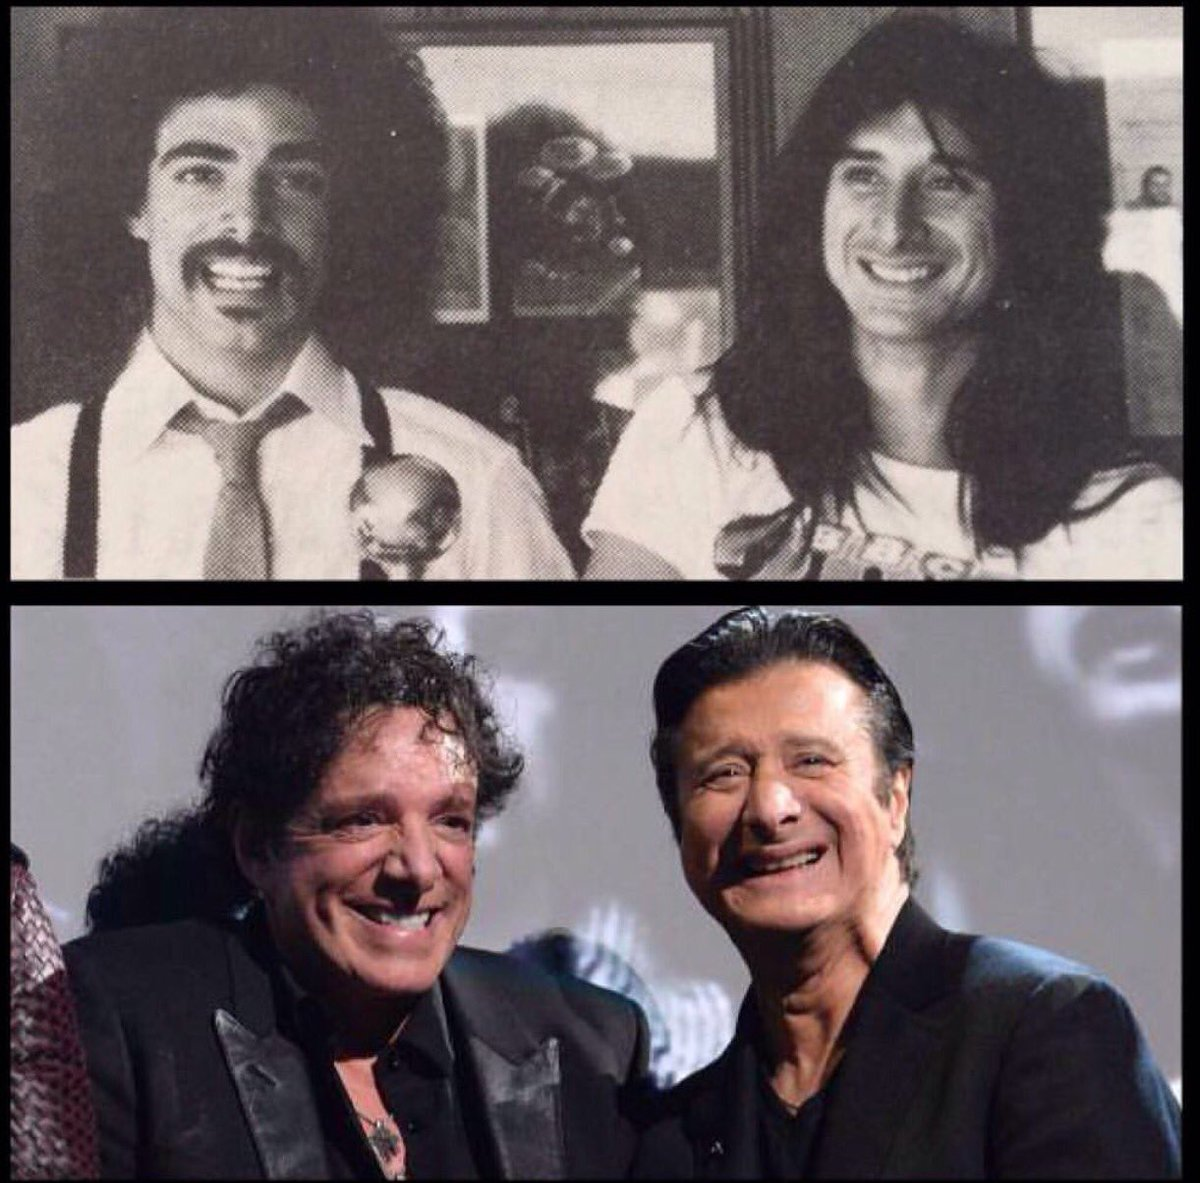 Then and now... Smiles are still the same  #StevePerry  #nealschon  #journey  @JourneyOfficial #RRHOF #brotherhood #TeamSchonPerry<br>http://pic.twitter.com/tdxFnWWsqd